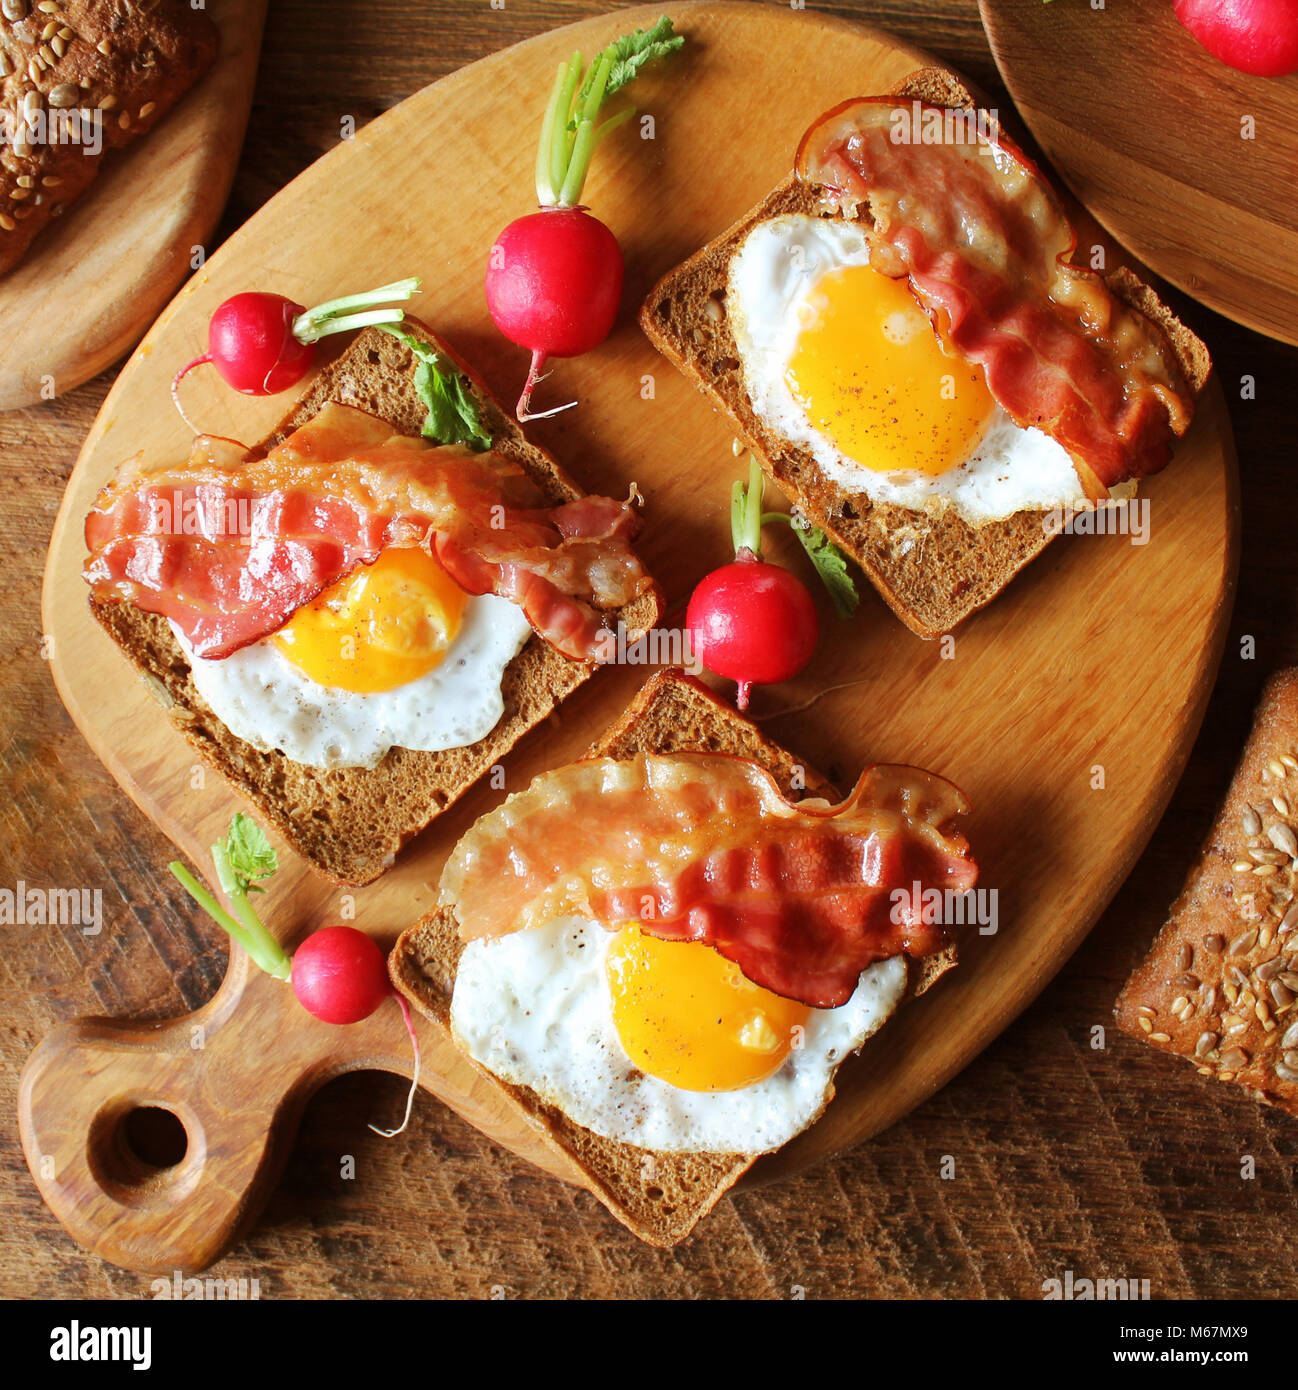 Breakfast , crispy bacon, fried eggs and bread. Sandwiches on cutting board. Rustic table . Top view - Stock Image